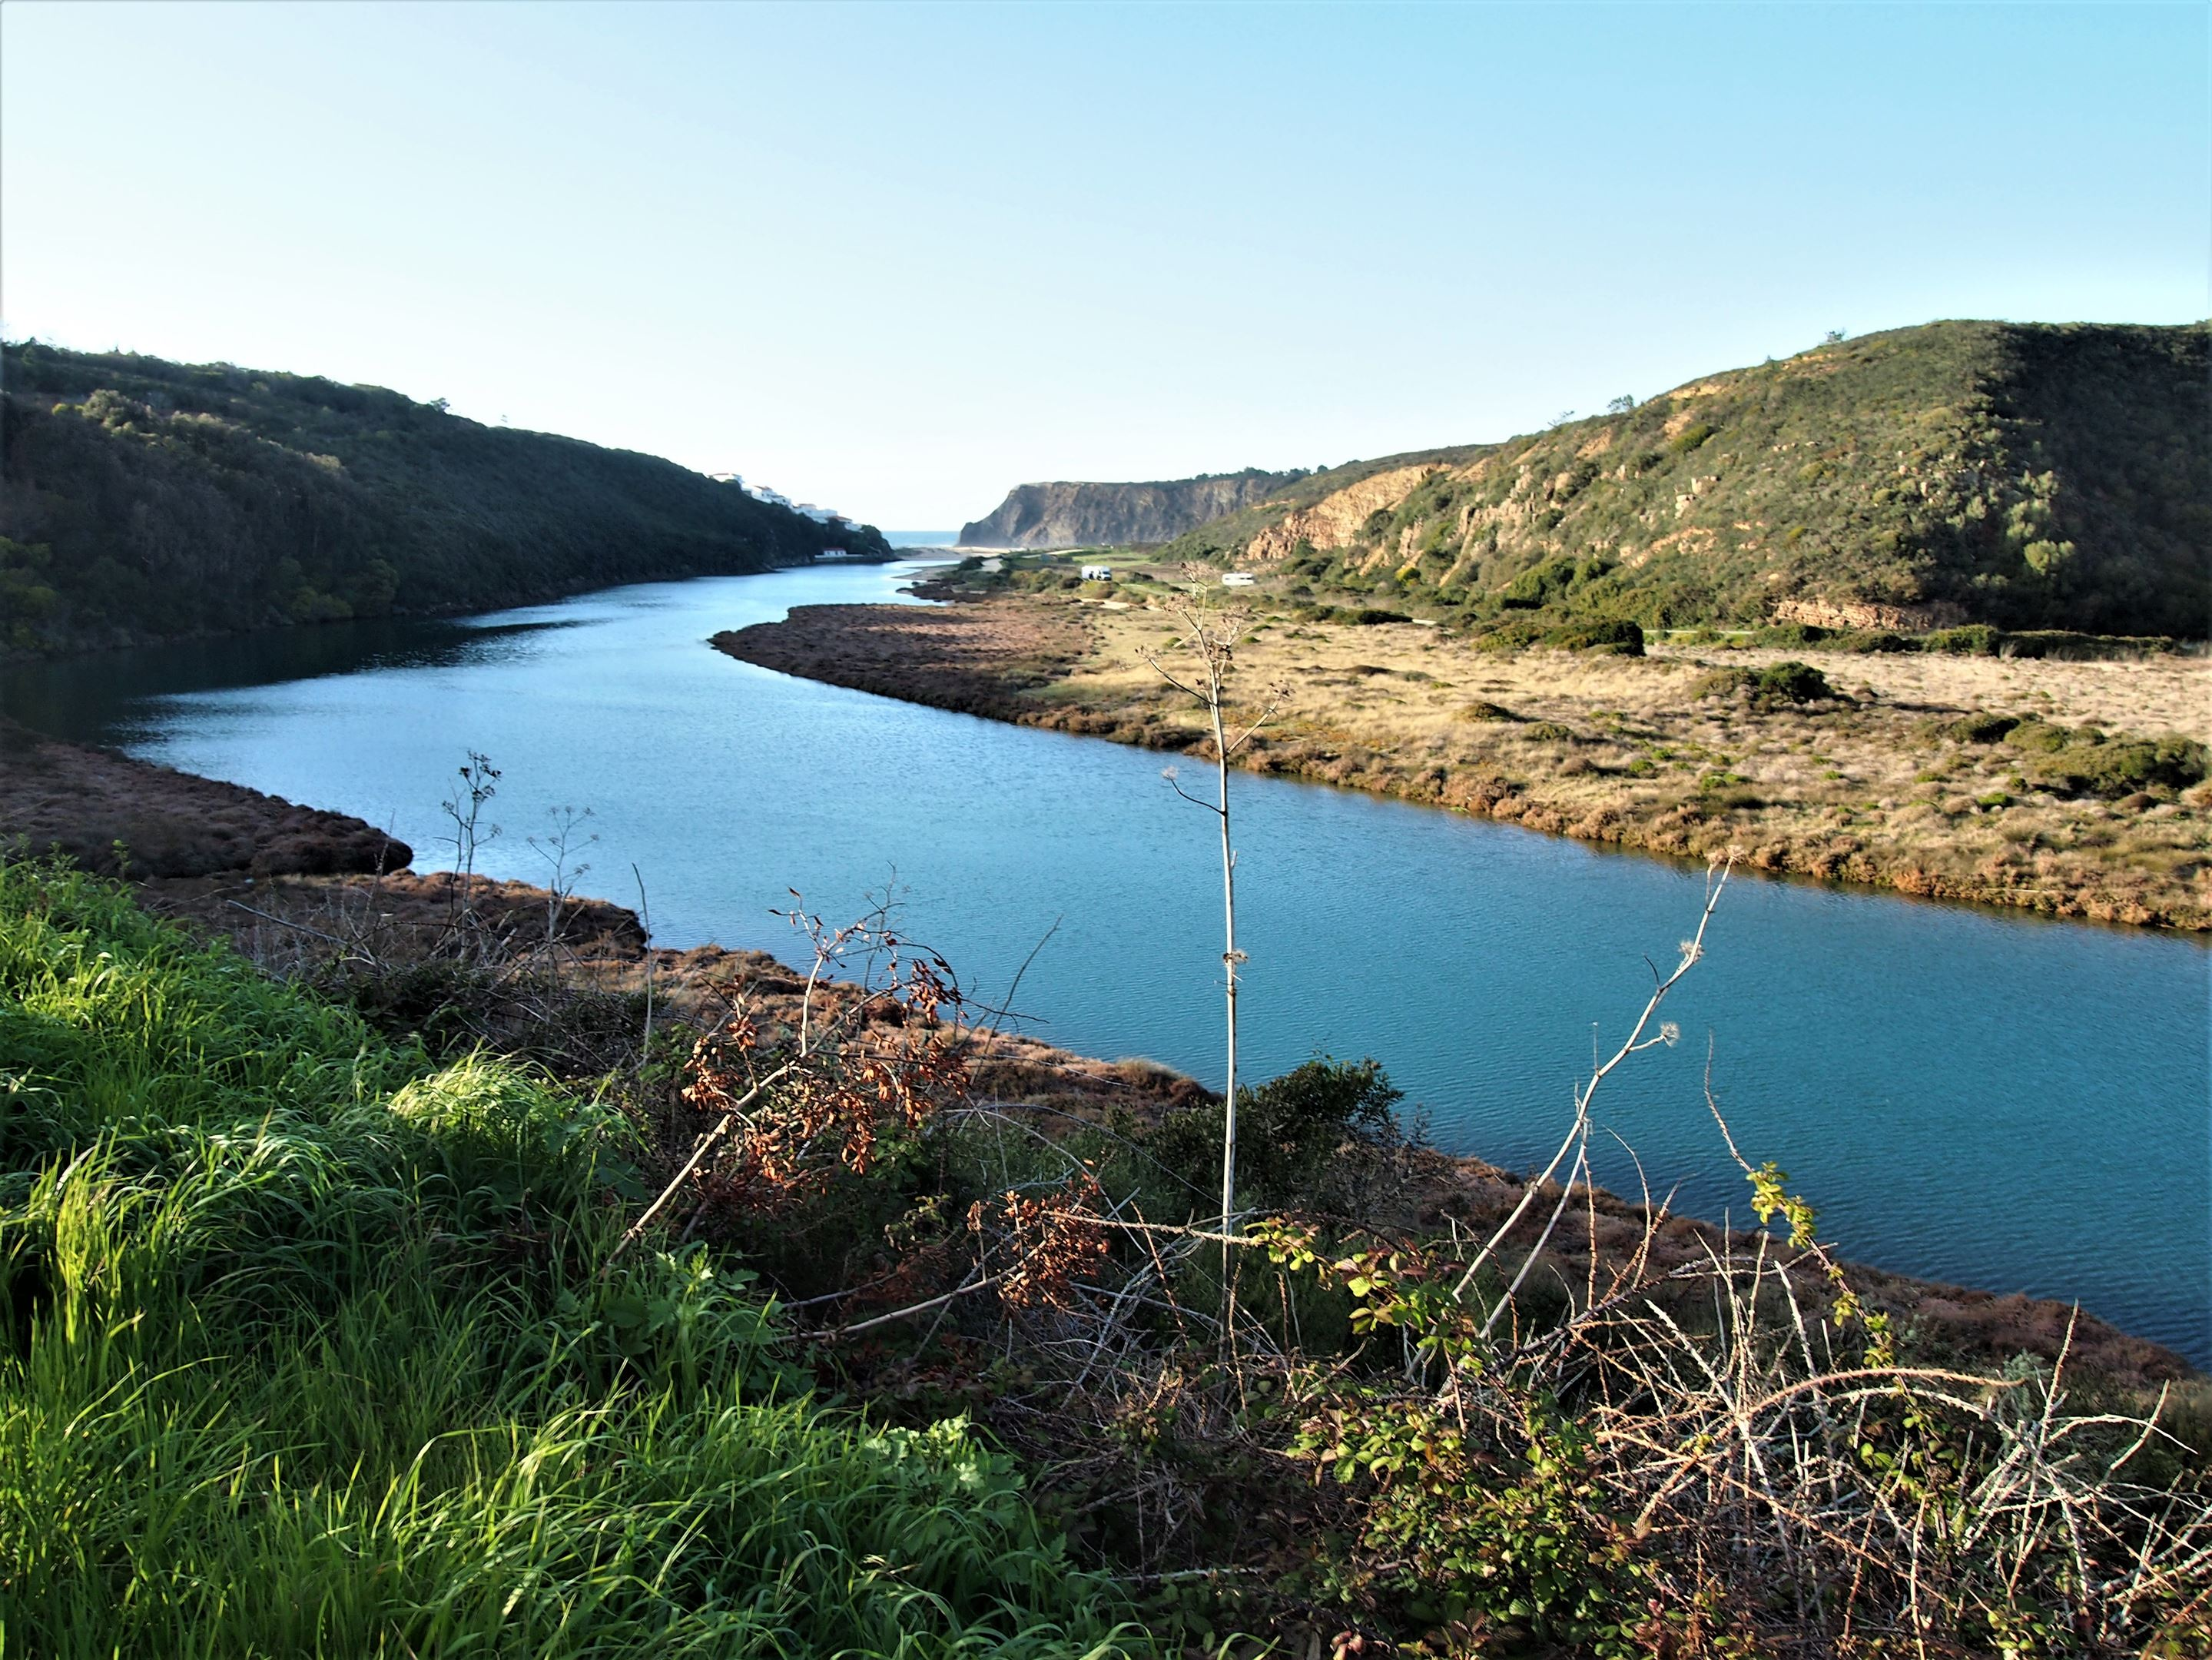 The Ribeira de Seixe (river) as it flows to the Atlantic Ocean with Praia de Odeceixe in the distance. The south side of this river is the Algarve, the north is the Alentejo region.